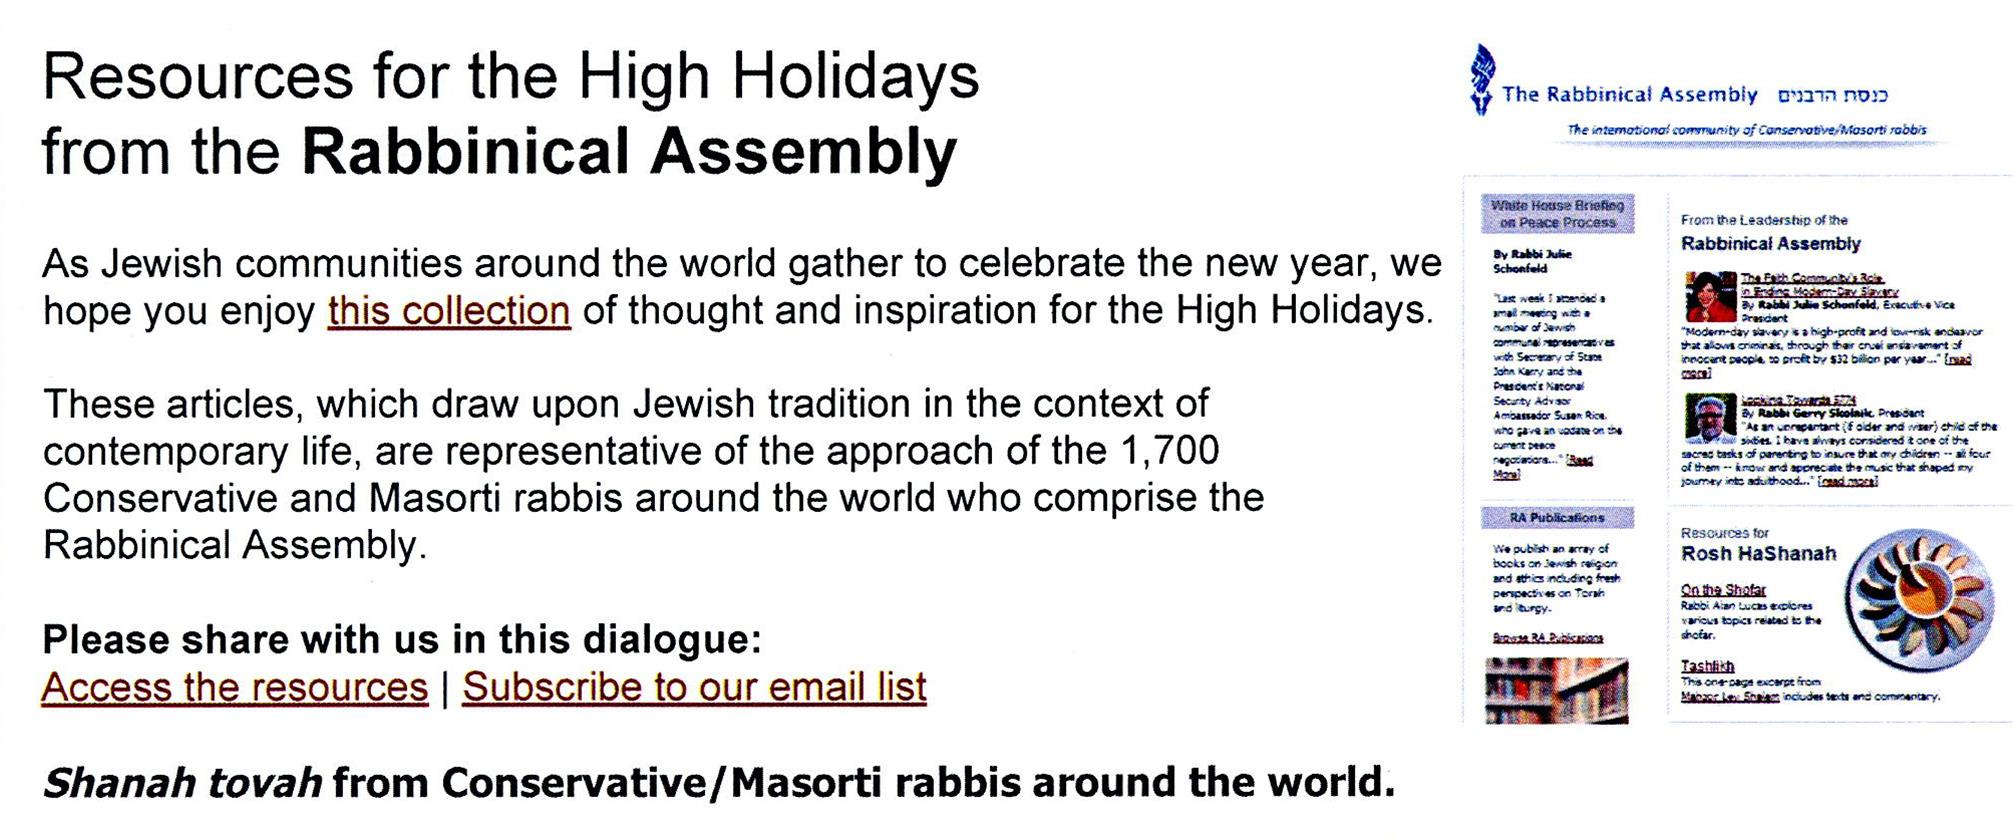 Rabbinical Assembly